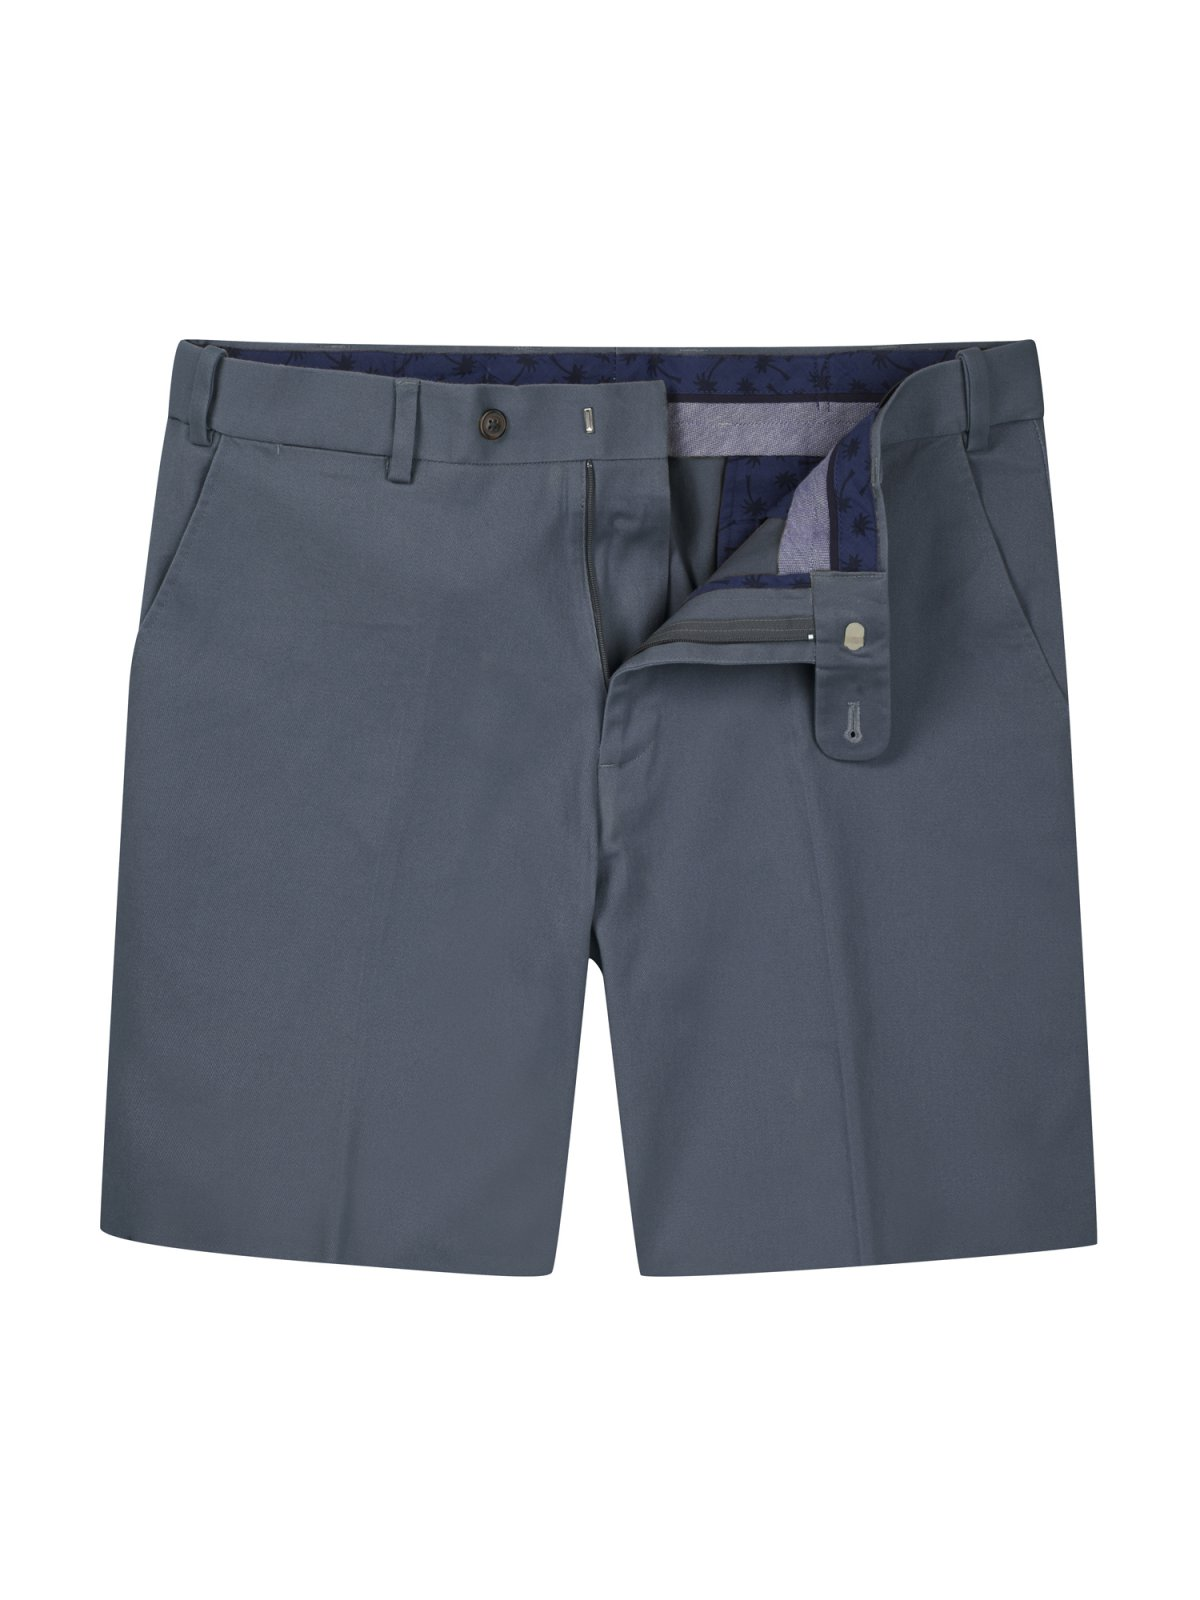 Biarritz Active waist Stretch Chino Shorts